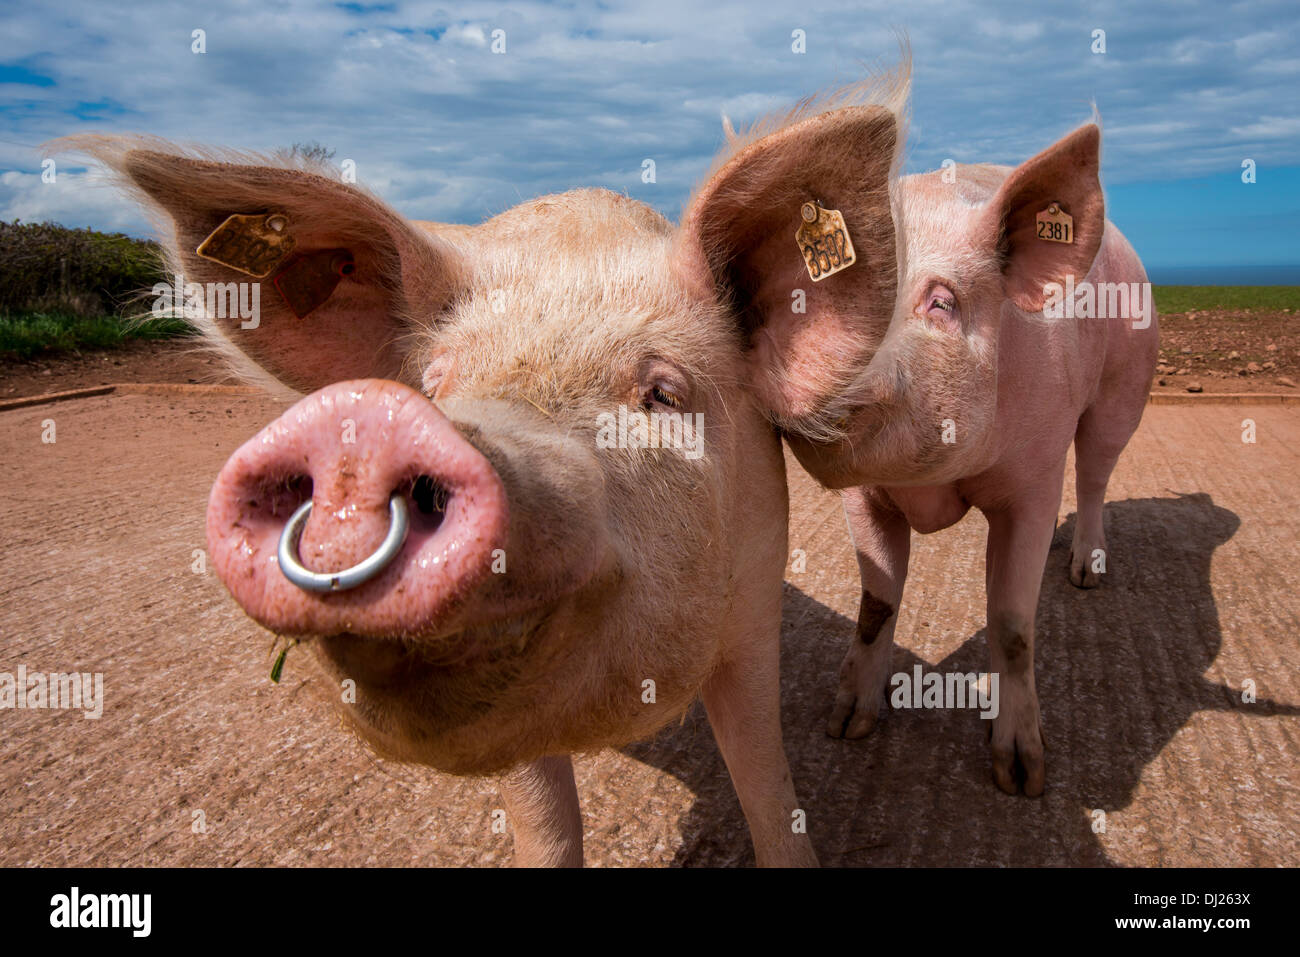 Pig Nose Ring High Resolution Stock Photography And Images Alamy